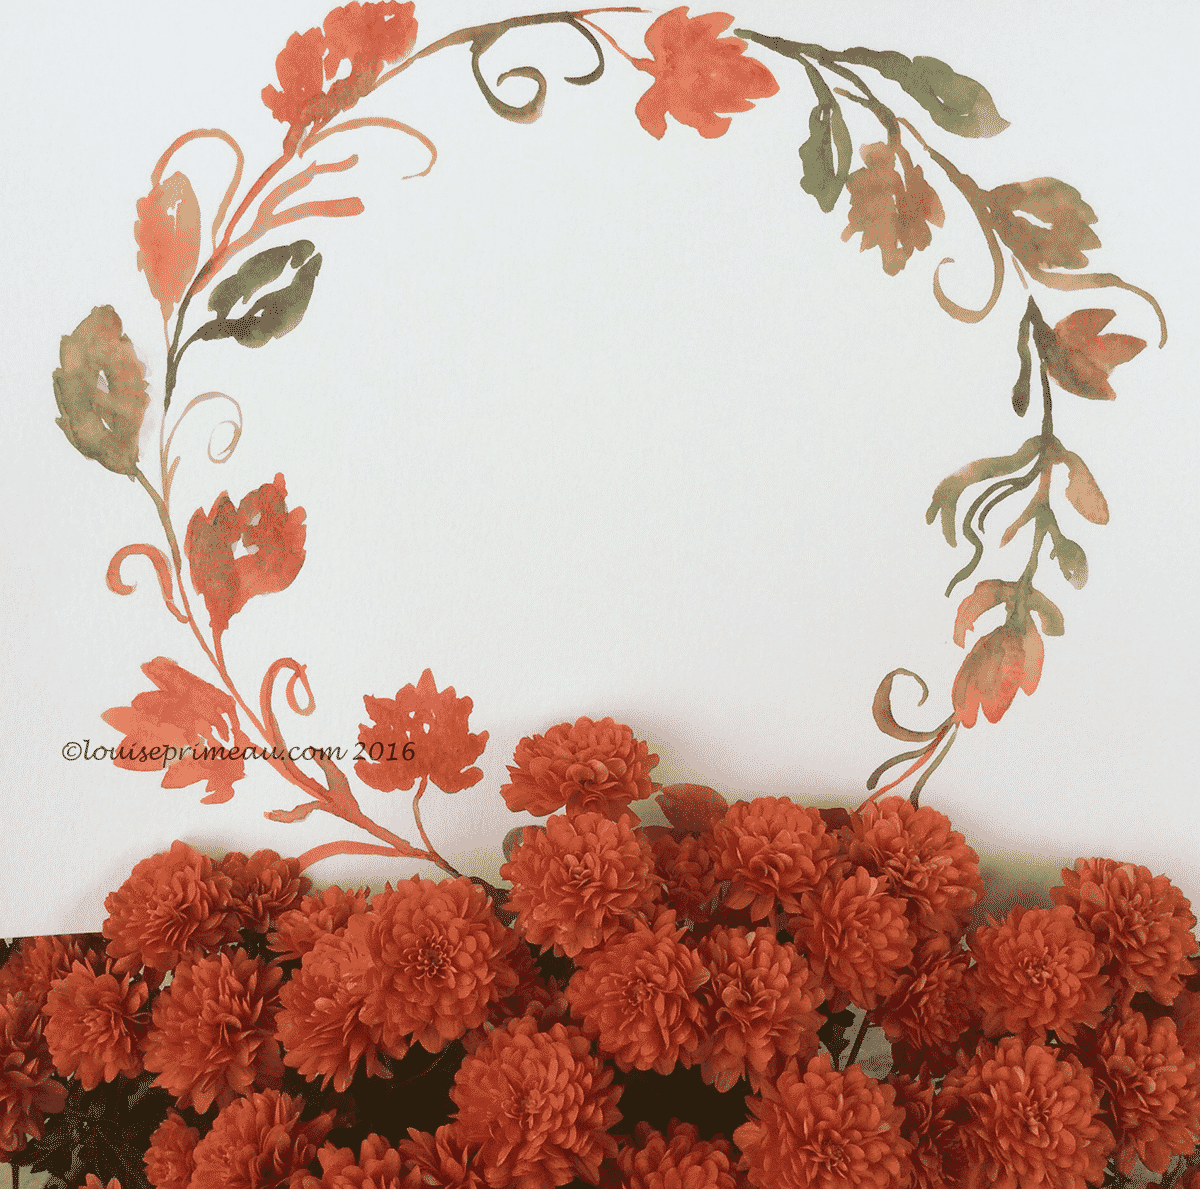 watercolour autumn wreath